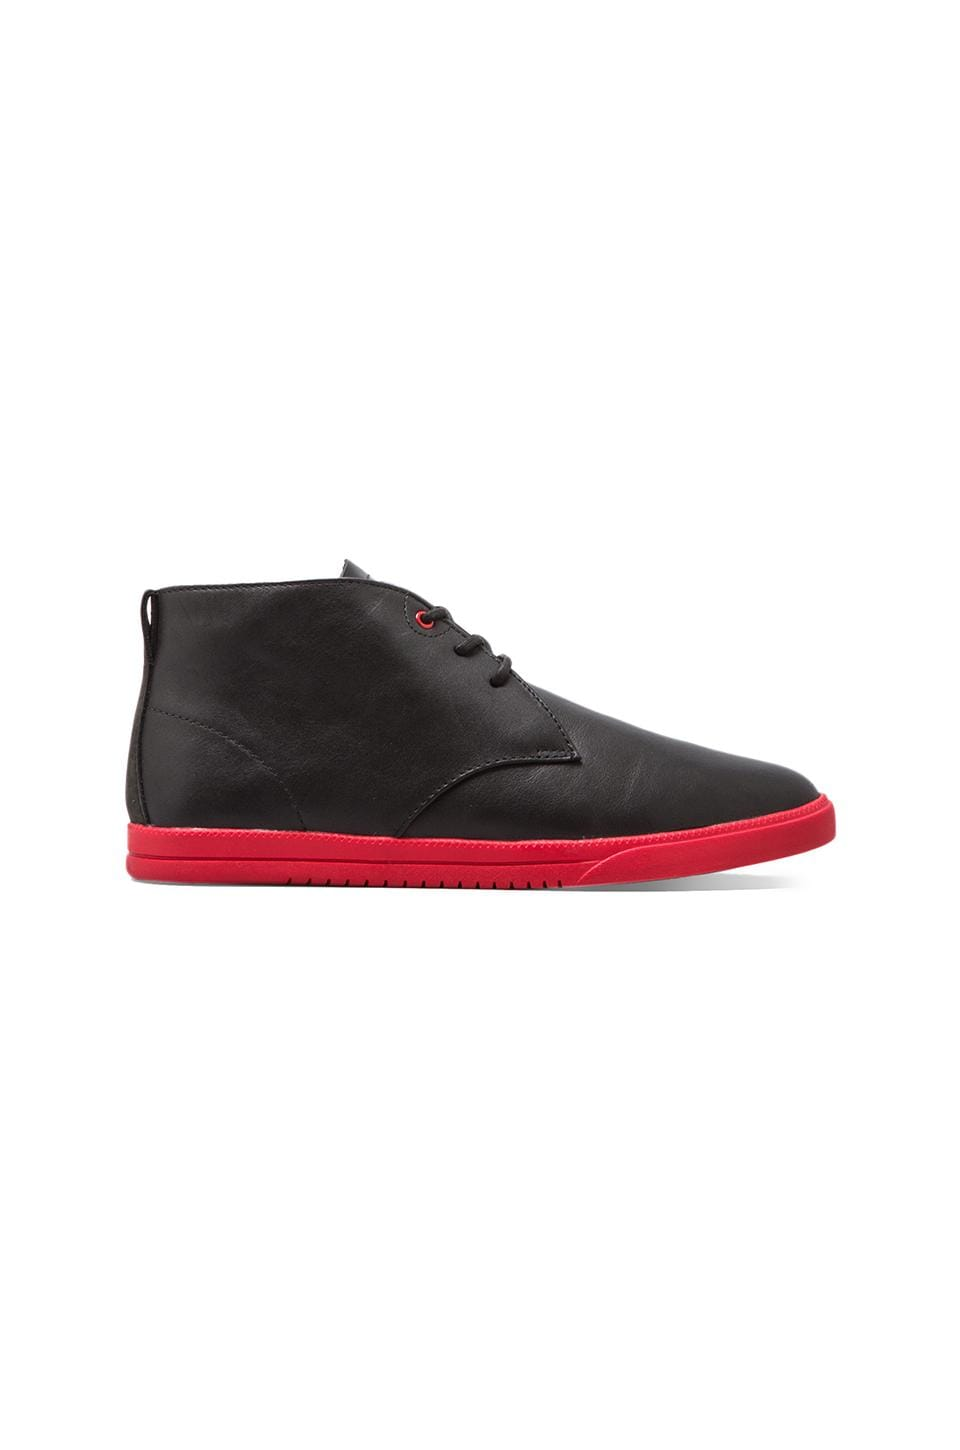 Clae Strayhorn in Black Leather Nubuck